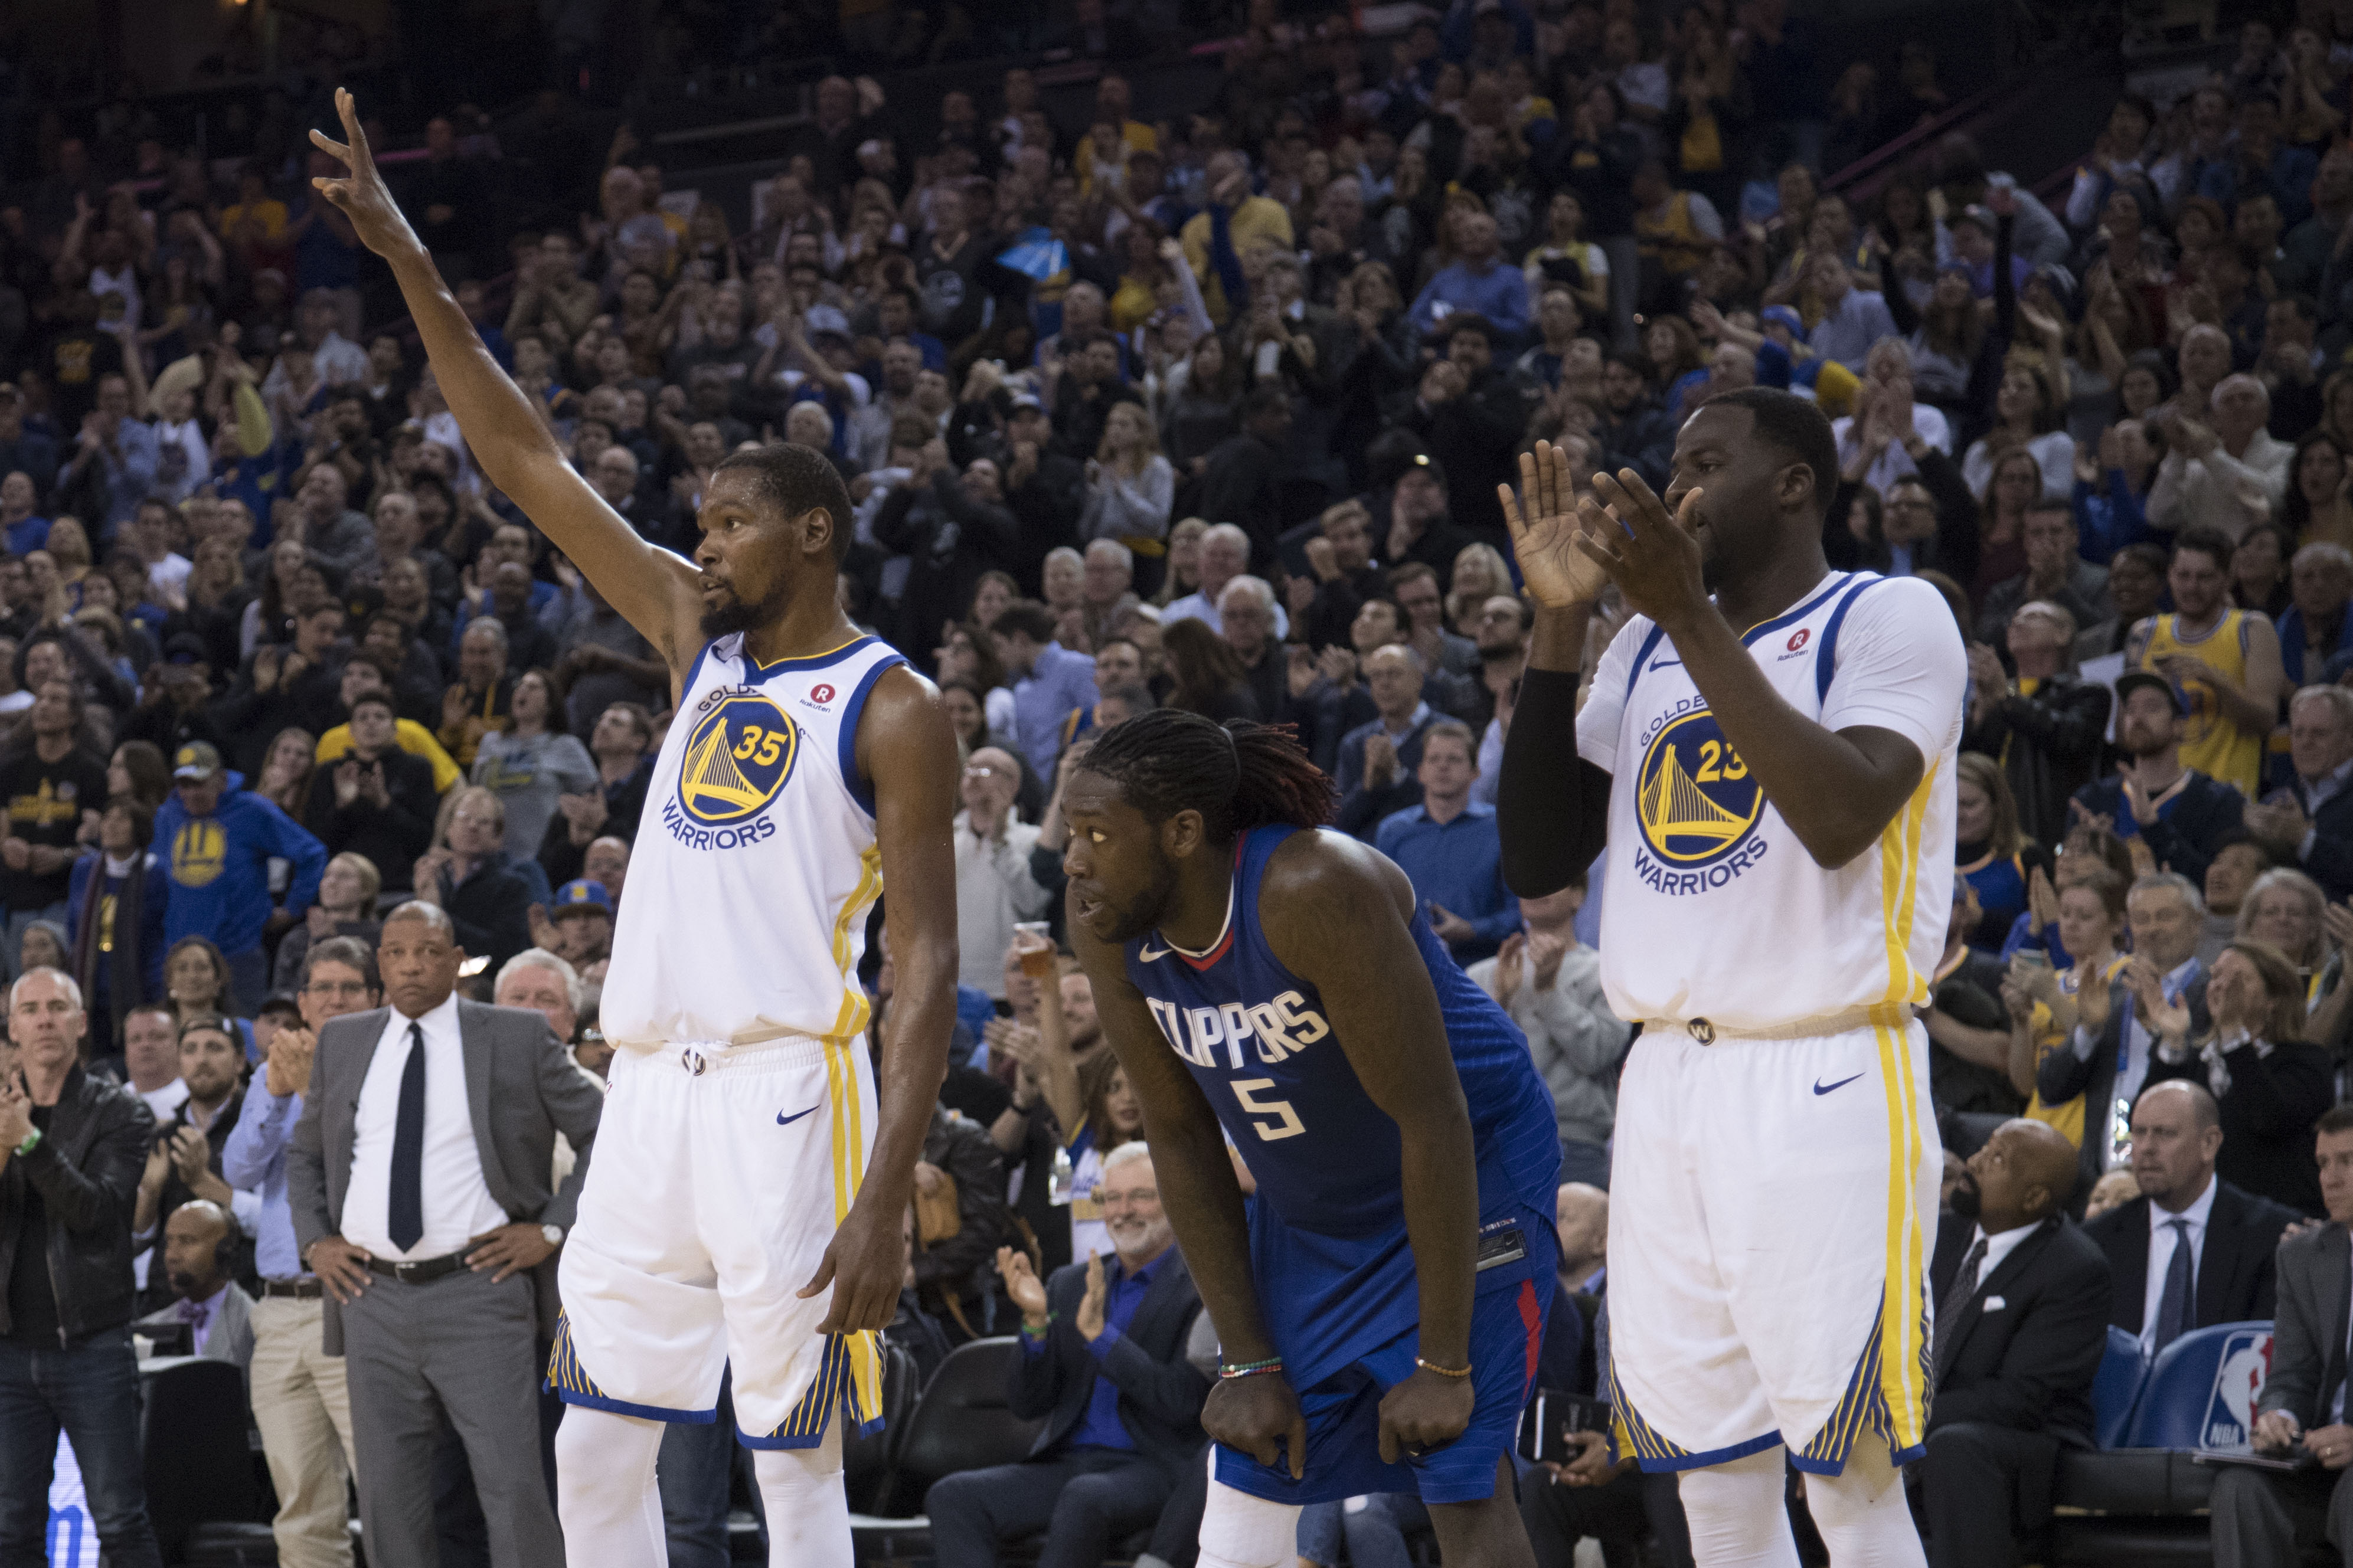 Kevin Durant becomes 2nd youngest player ever to reach 20,000 points